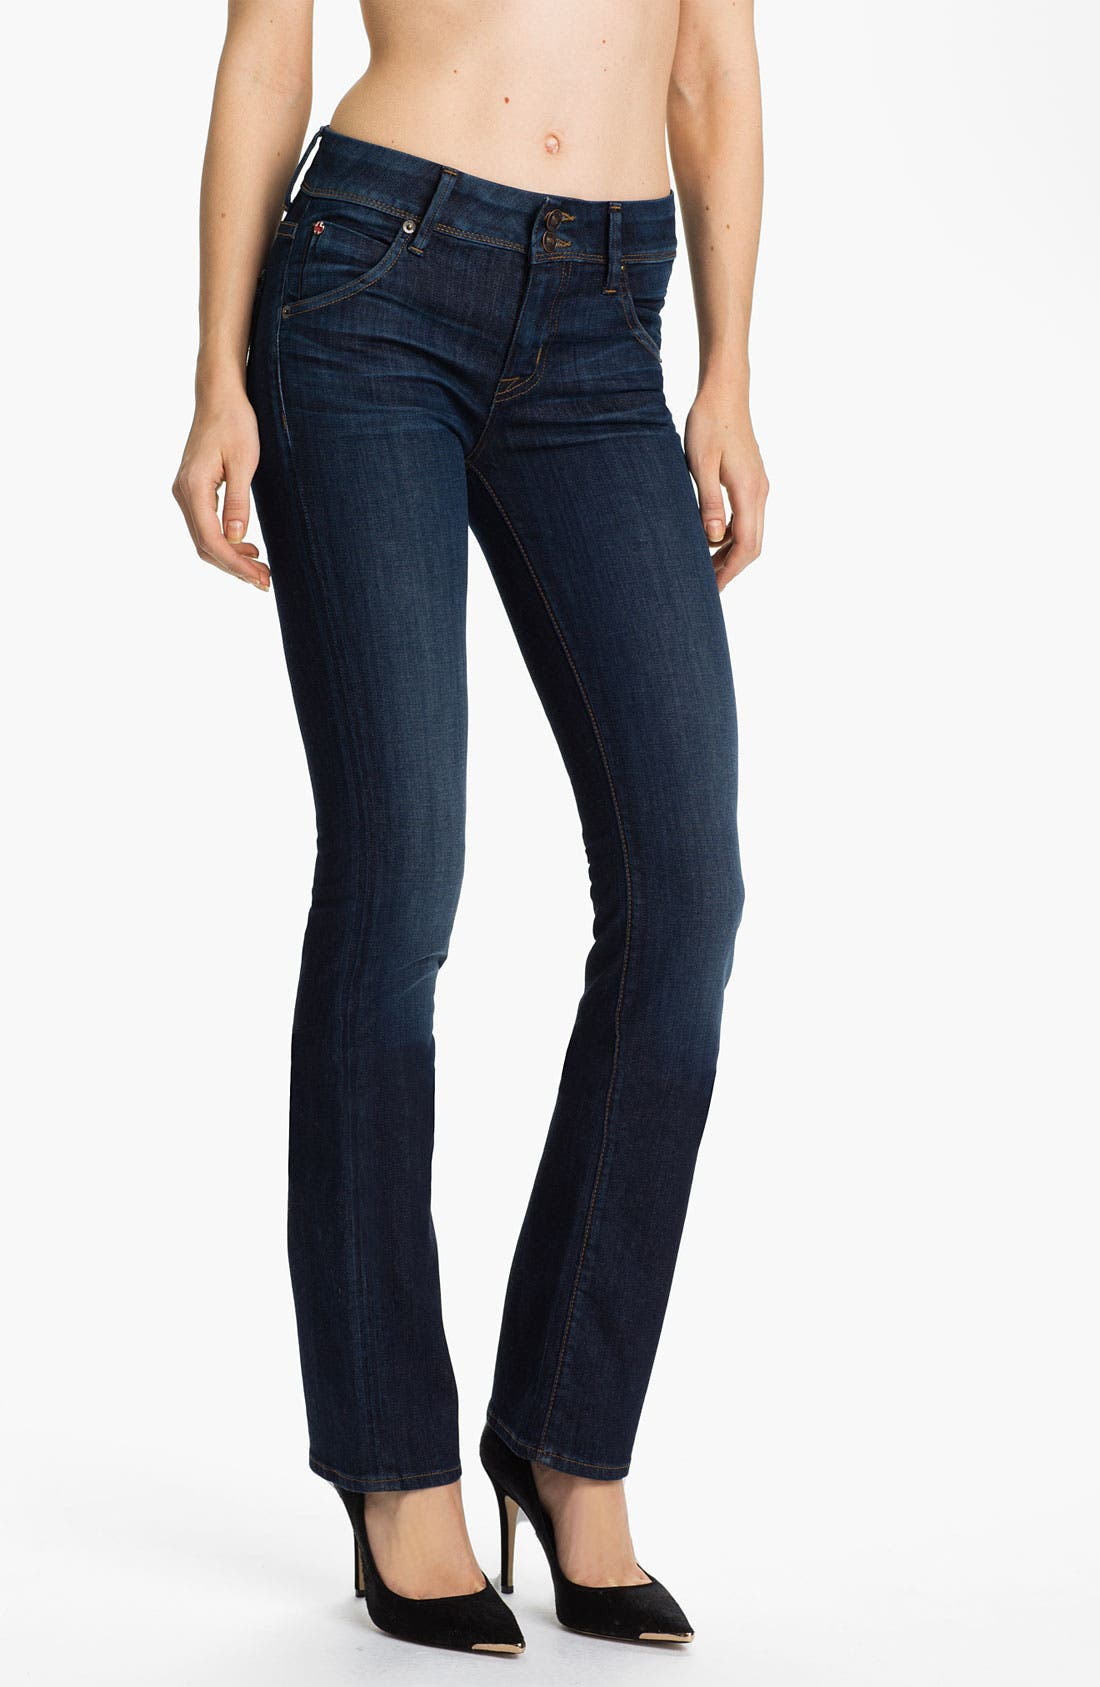 Alternate Image 1 Selected - Hudson Jeans 'Beth' Baby Bootcut Jeans (Blue)